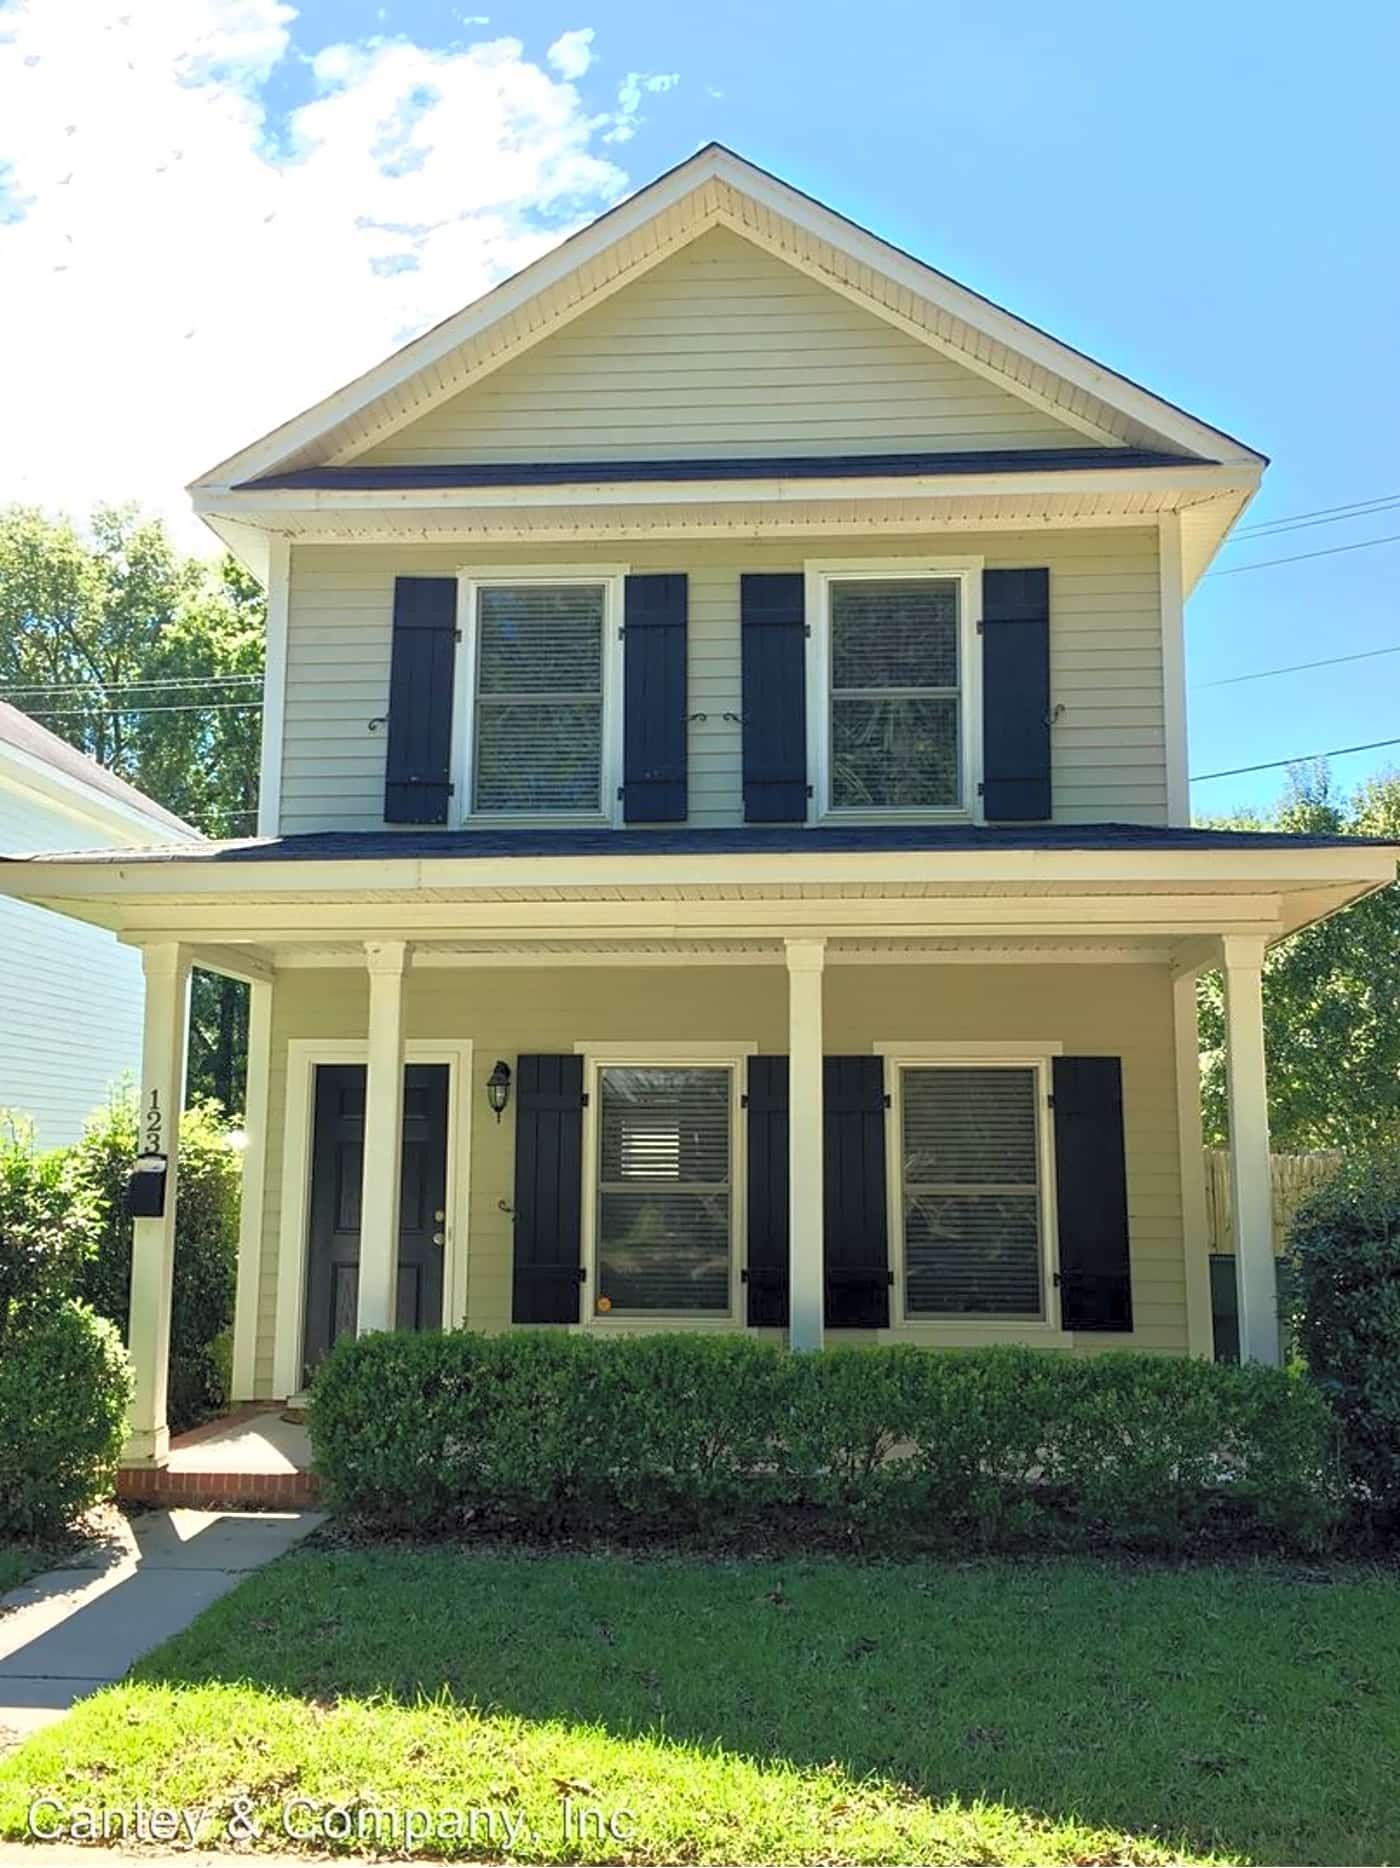 123 Tryon St Tryon St Columbia Sc Houses For Rent Rent Com Renting A House House House Rental